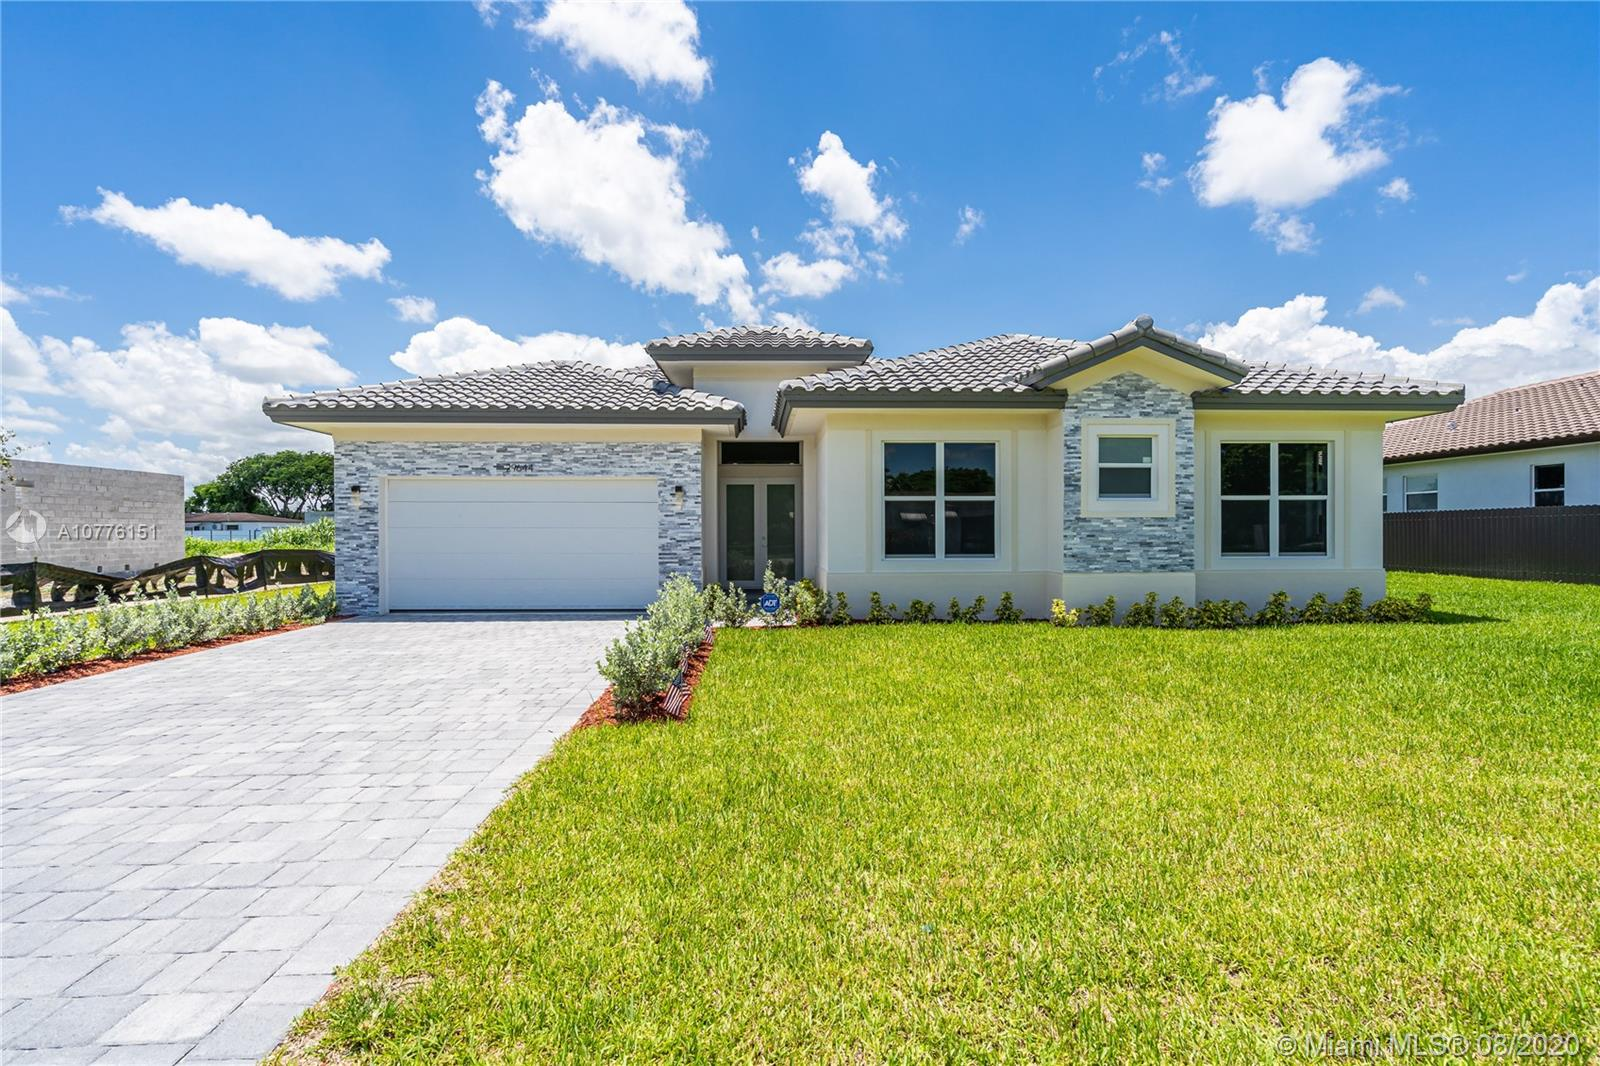 29601 SW 169 AVE Property Photo - Homestead, FL real estate listing